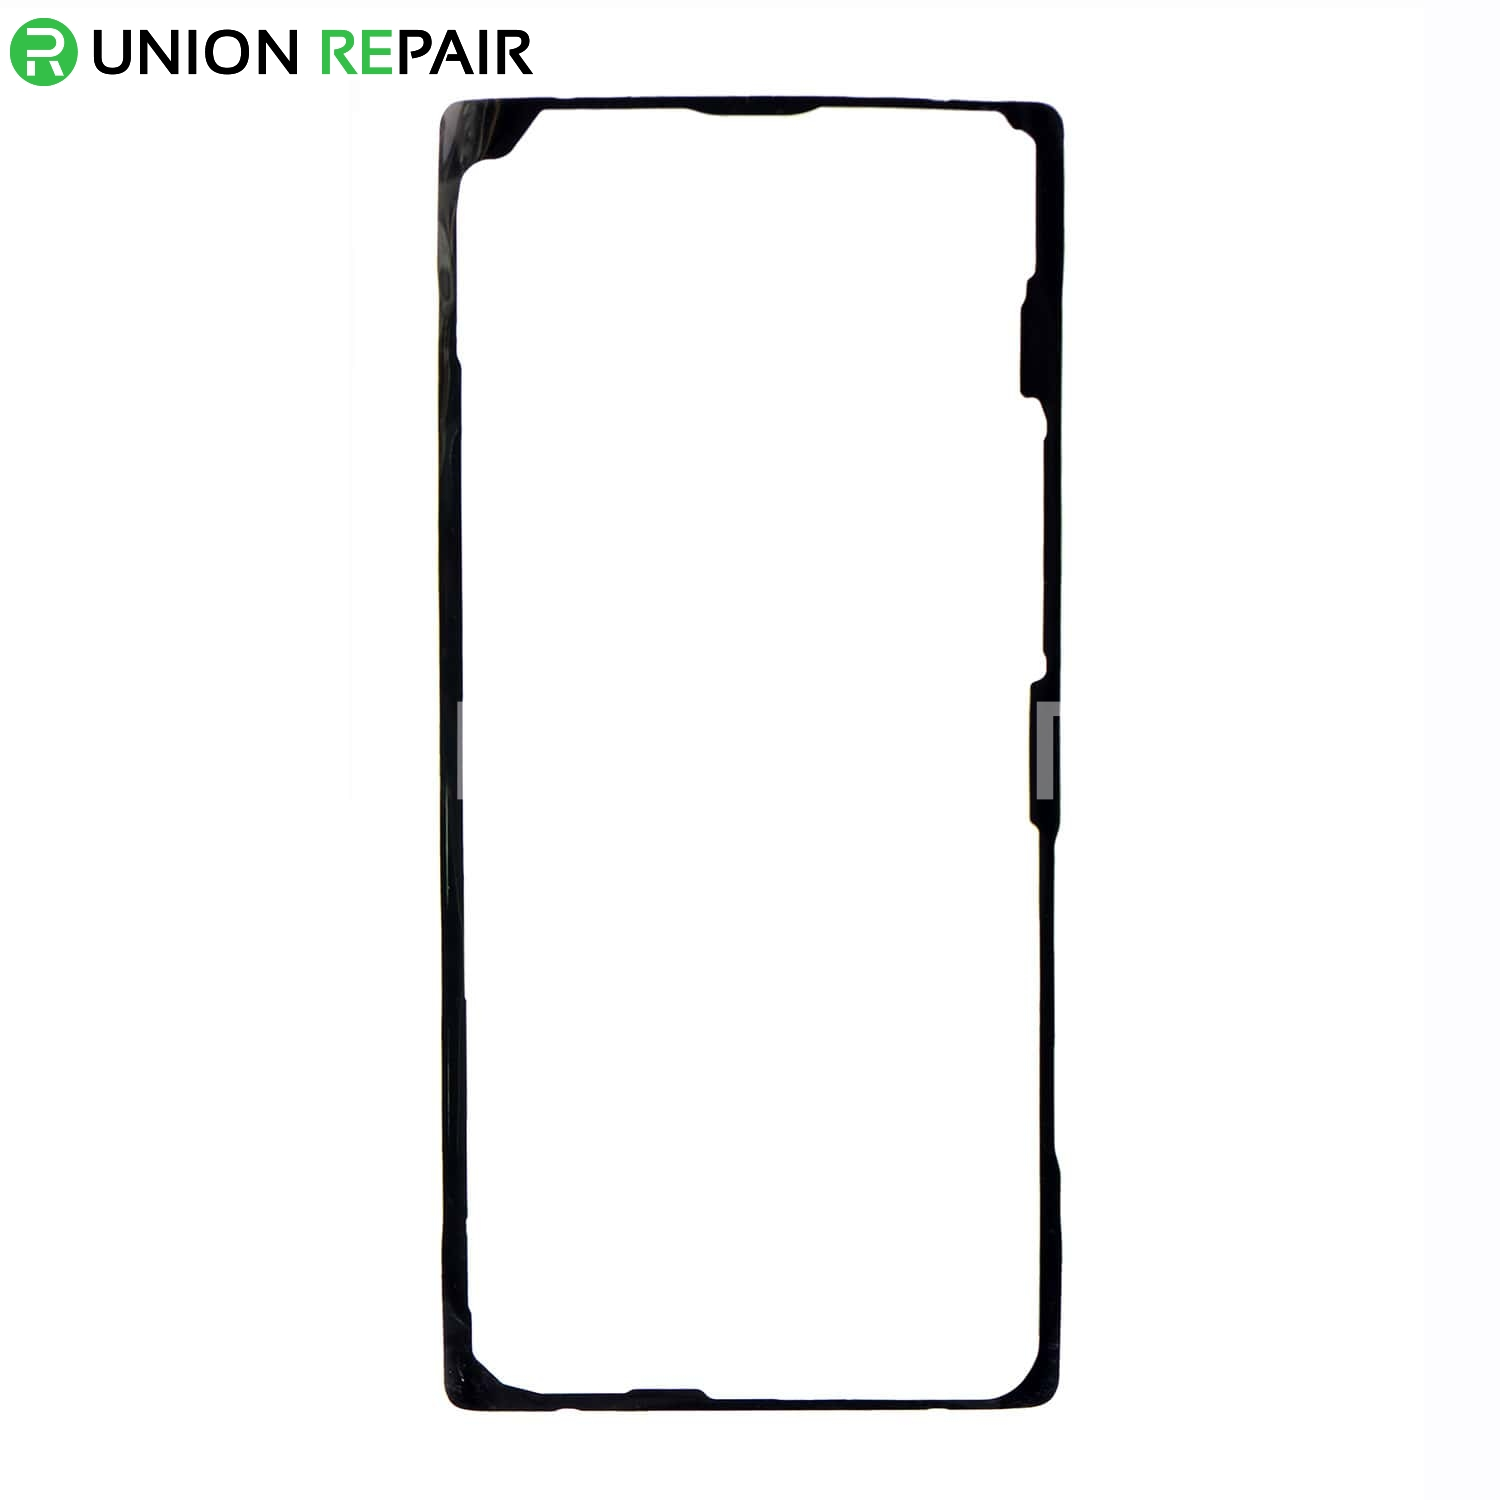 Replacement for Samsung Galaxy Note 20 Ultra Battery Door Adhesive